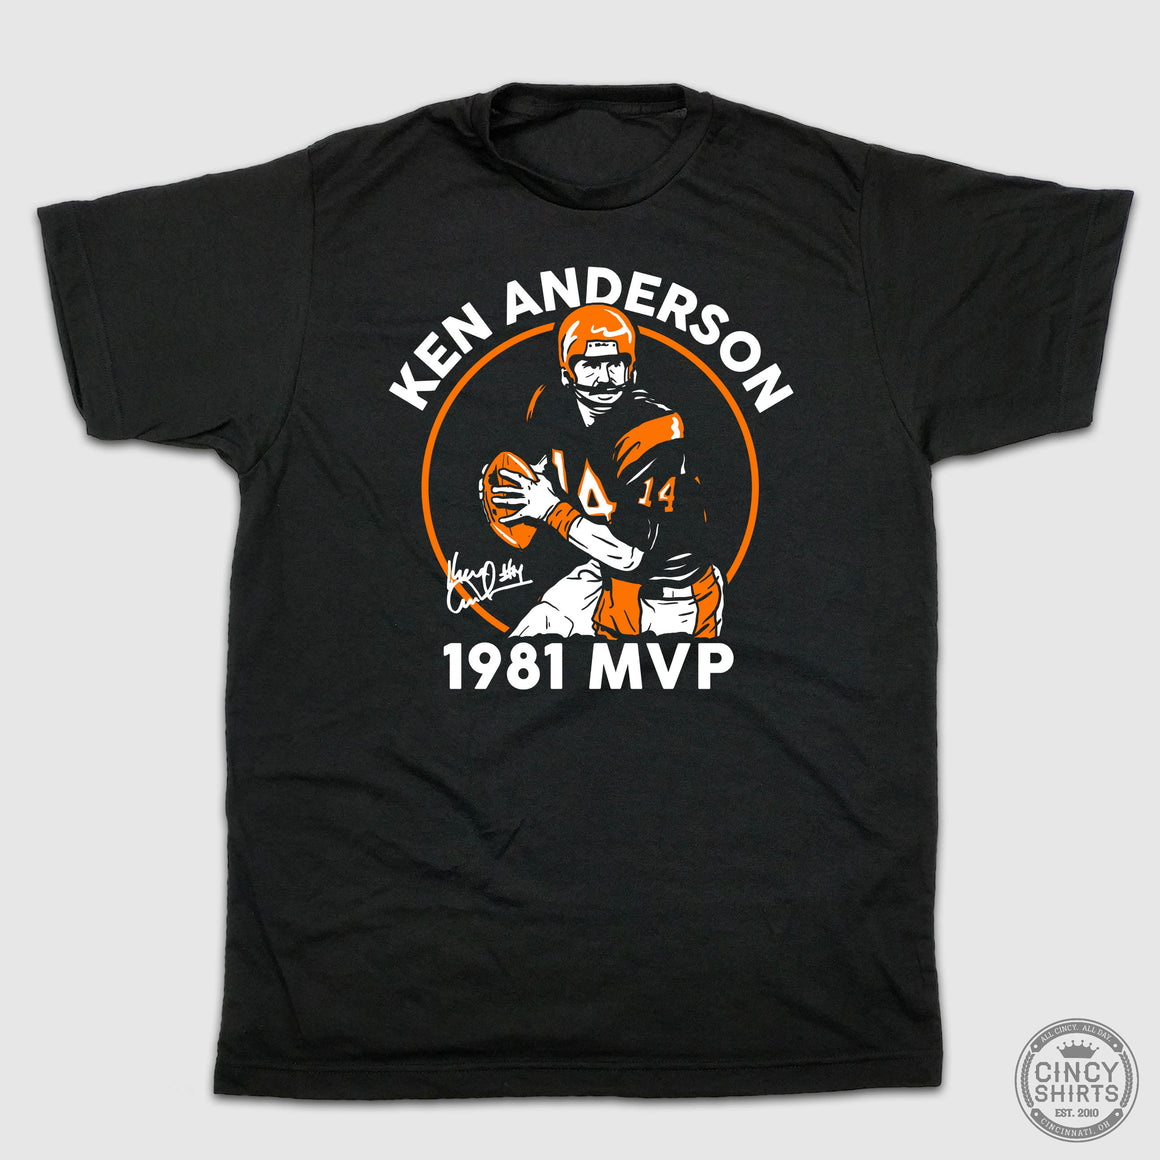 Ken Anderson 1981 MVP - Cincy Shirts